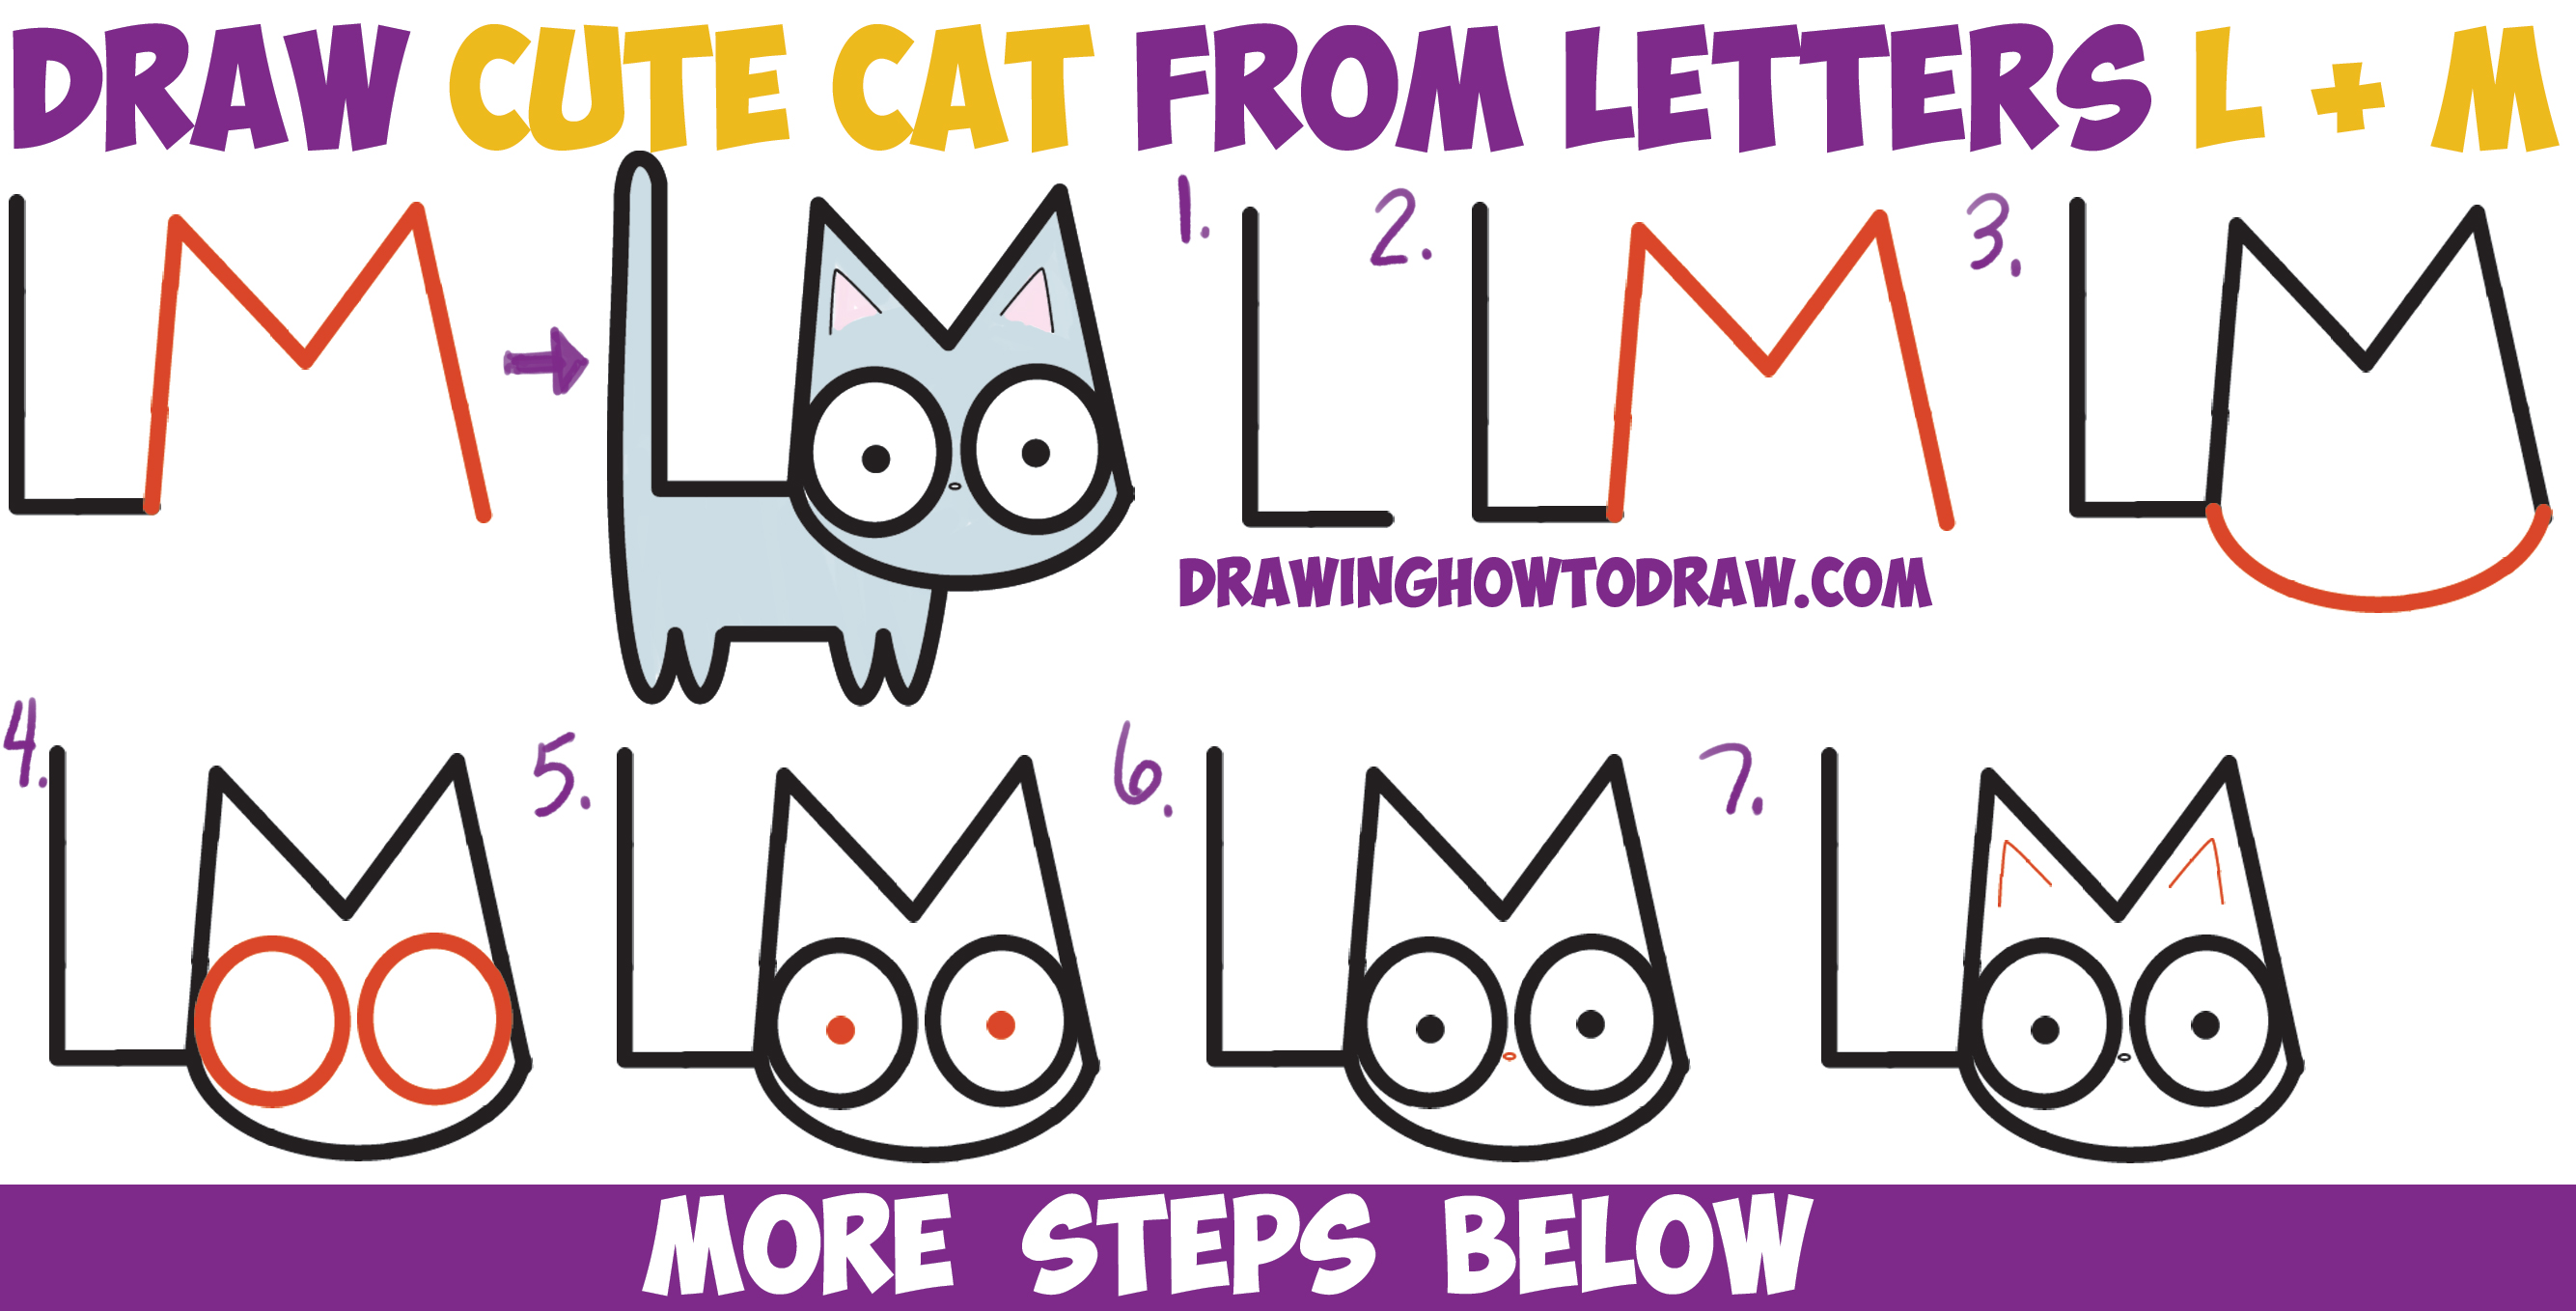 2669x1358 How To Draw A Cute Cartoon Kitten From Letters L + M Easy Step By